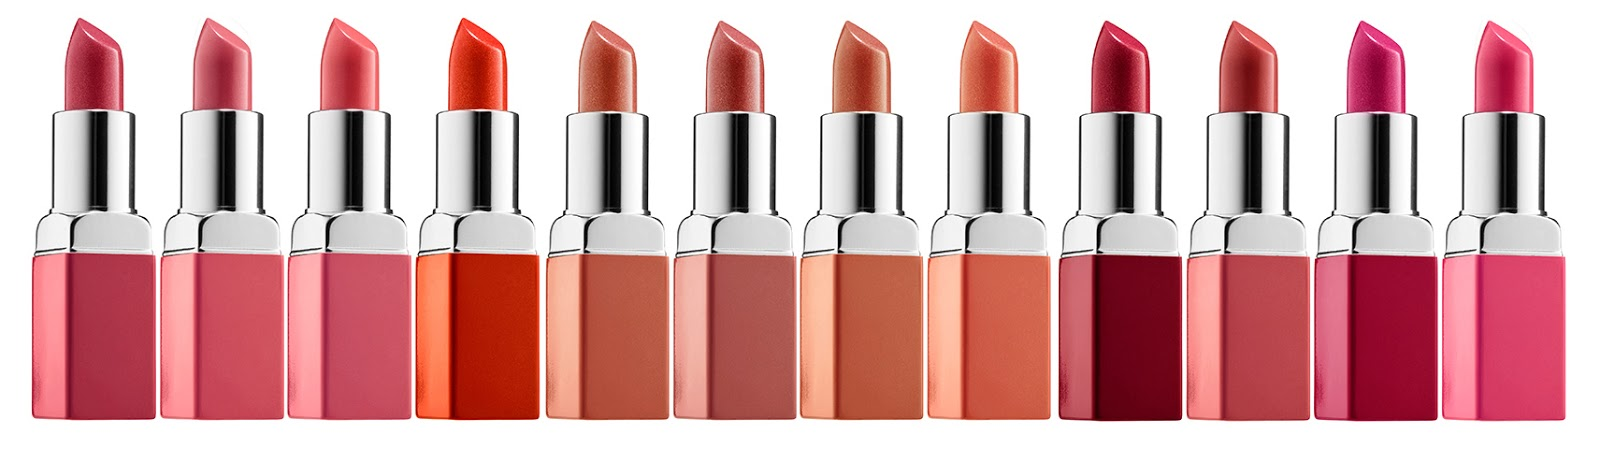 clinique pop colour lipstick, clinique pop colour lipstick and primer